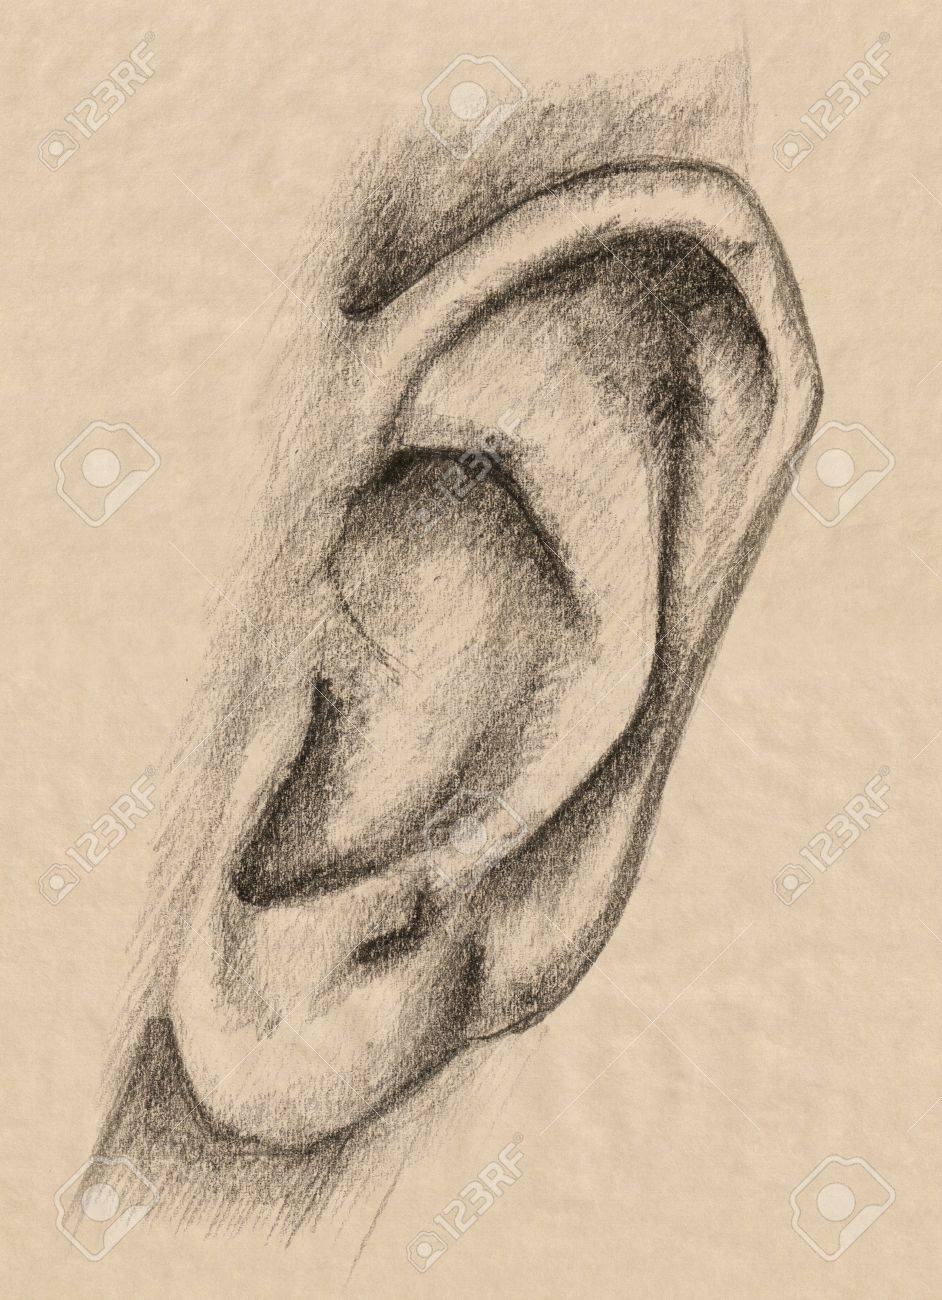 Ear Pencil Drawing